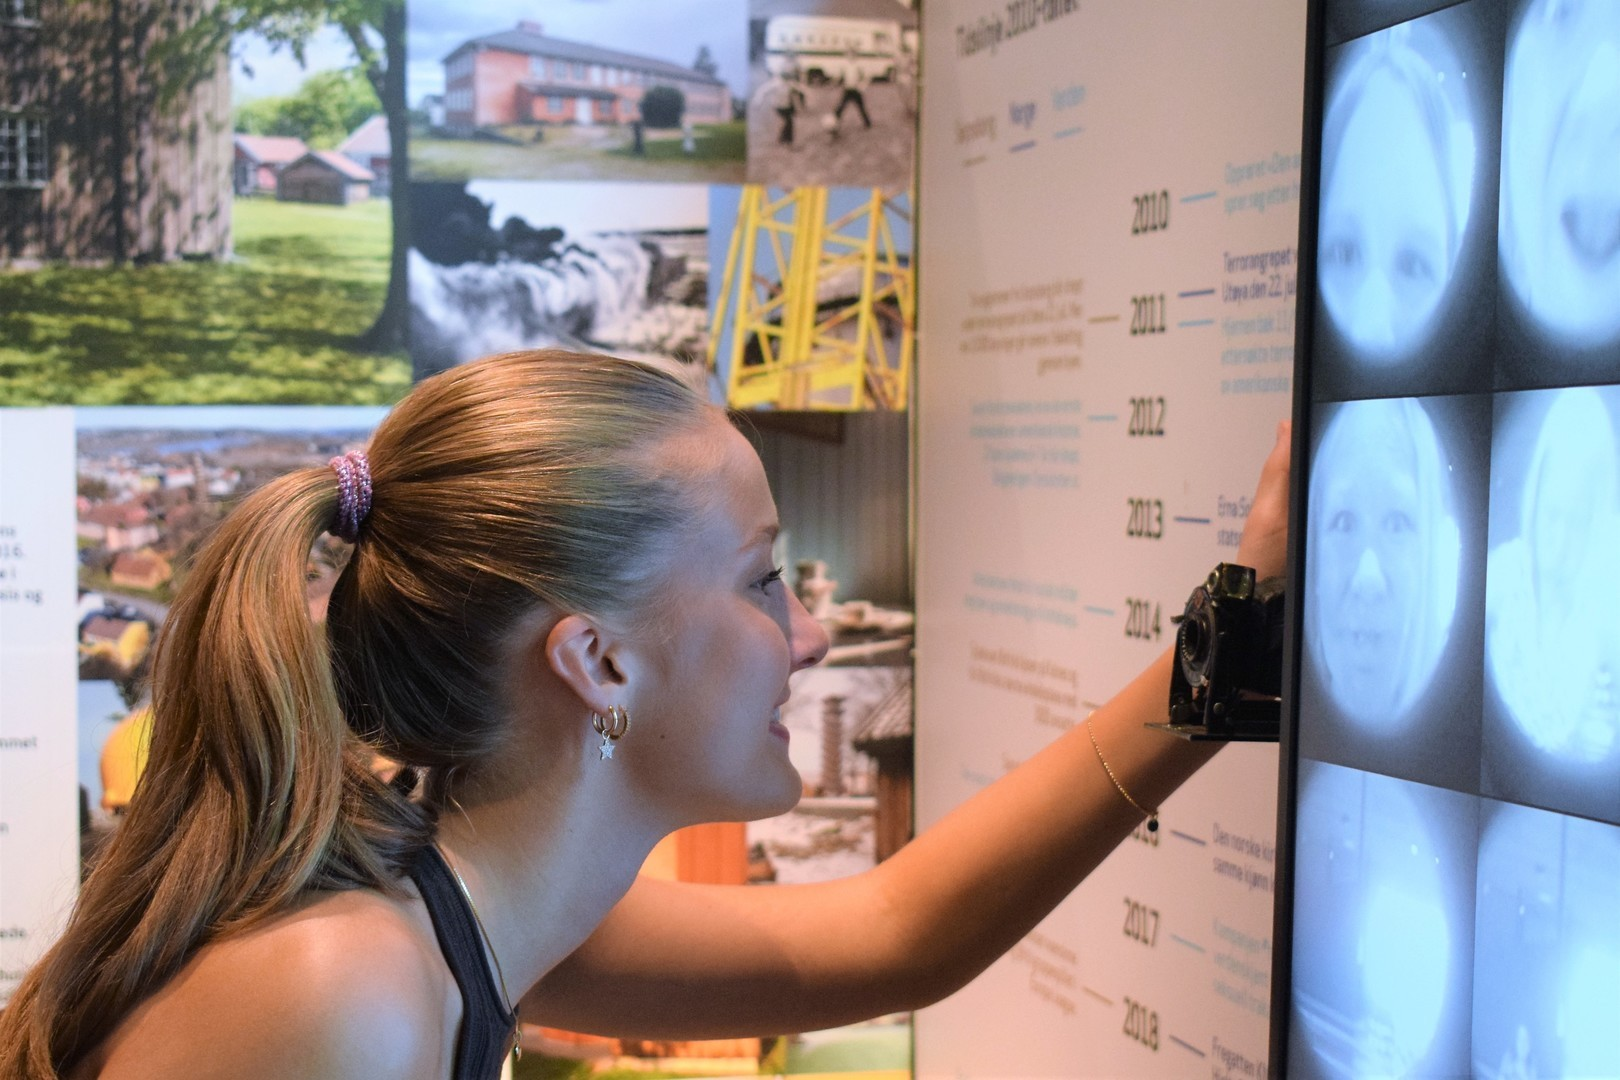 Visitors interact with photo booth installation